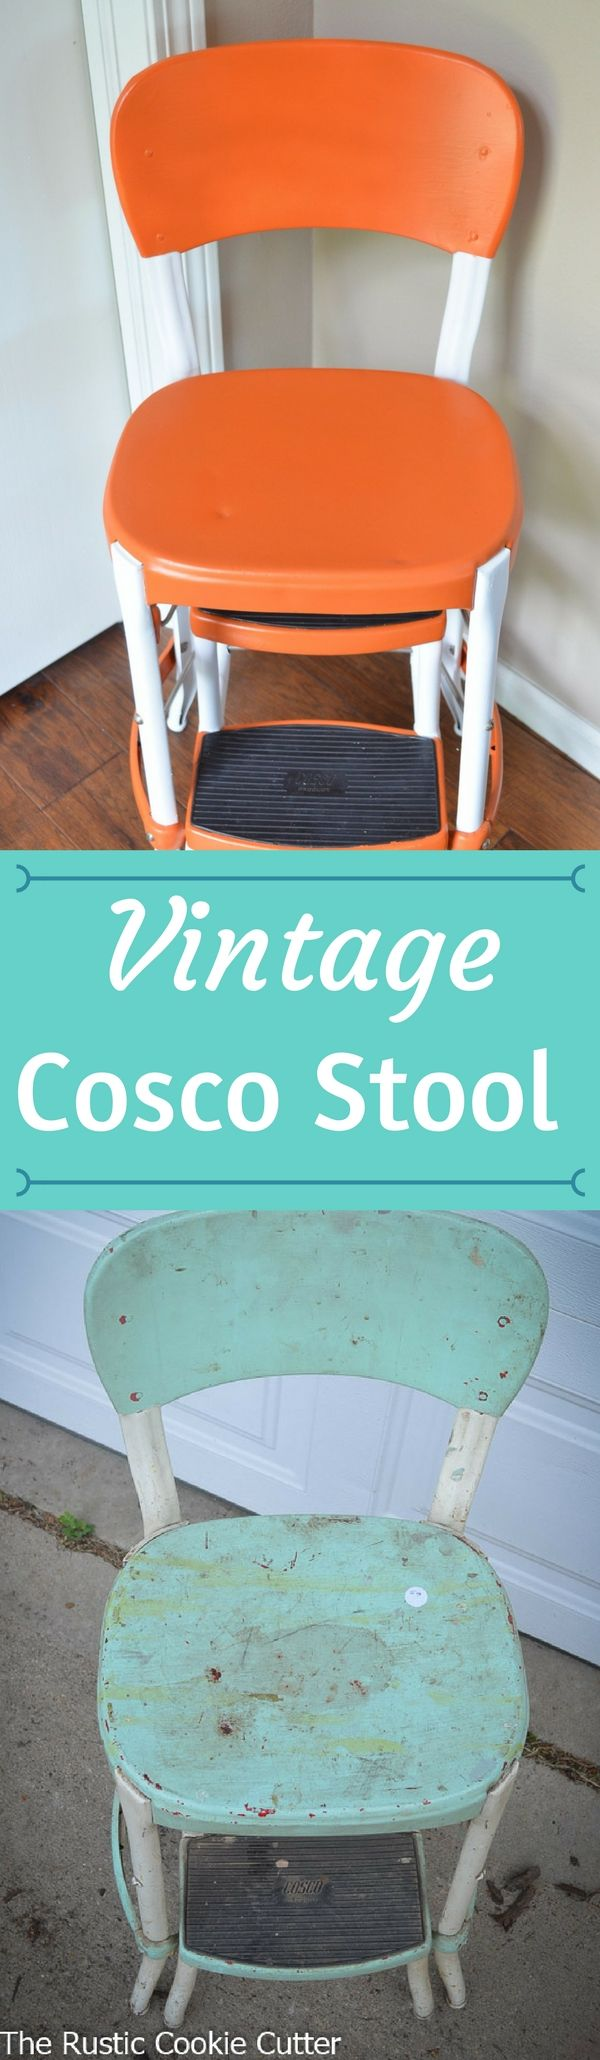 This Vintage Cosco Stool Makeover was amazing! It was in great shape except for the color. I love the orange and white.